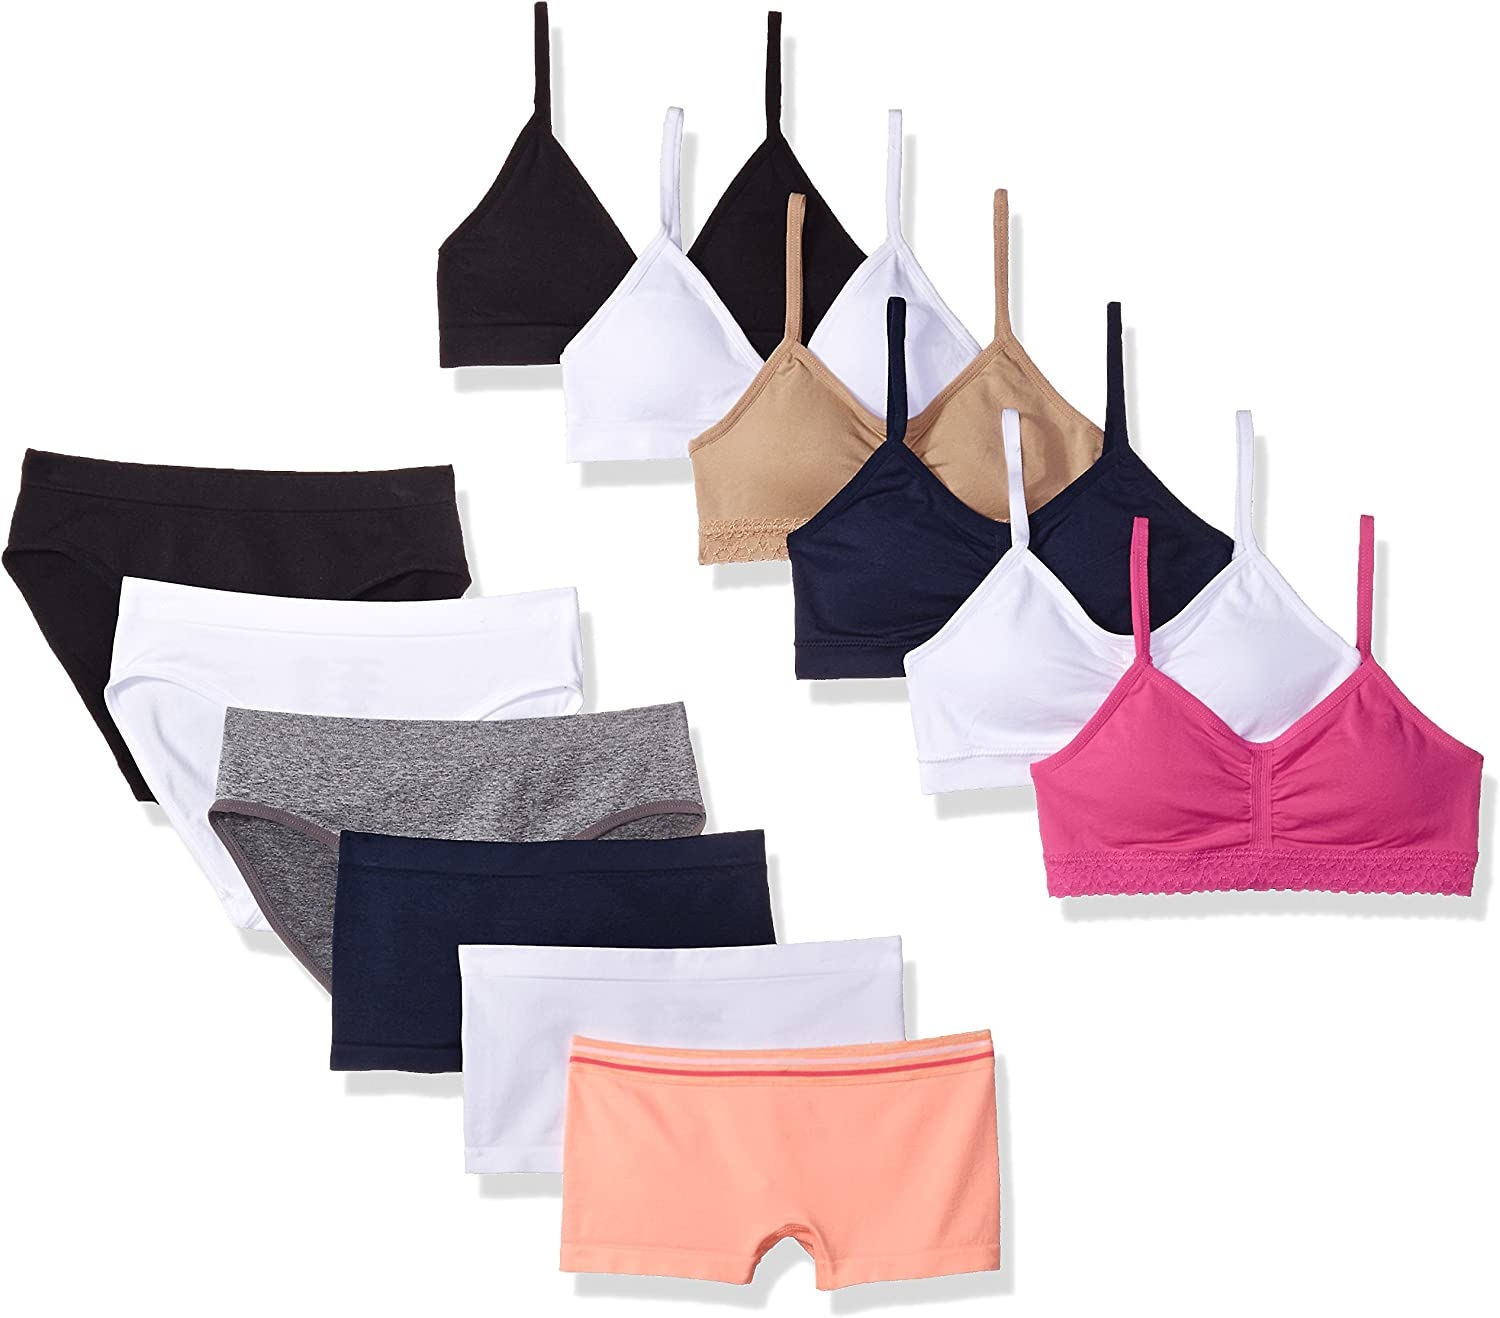 Maidenform Bras And Panties Gif